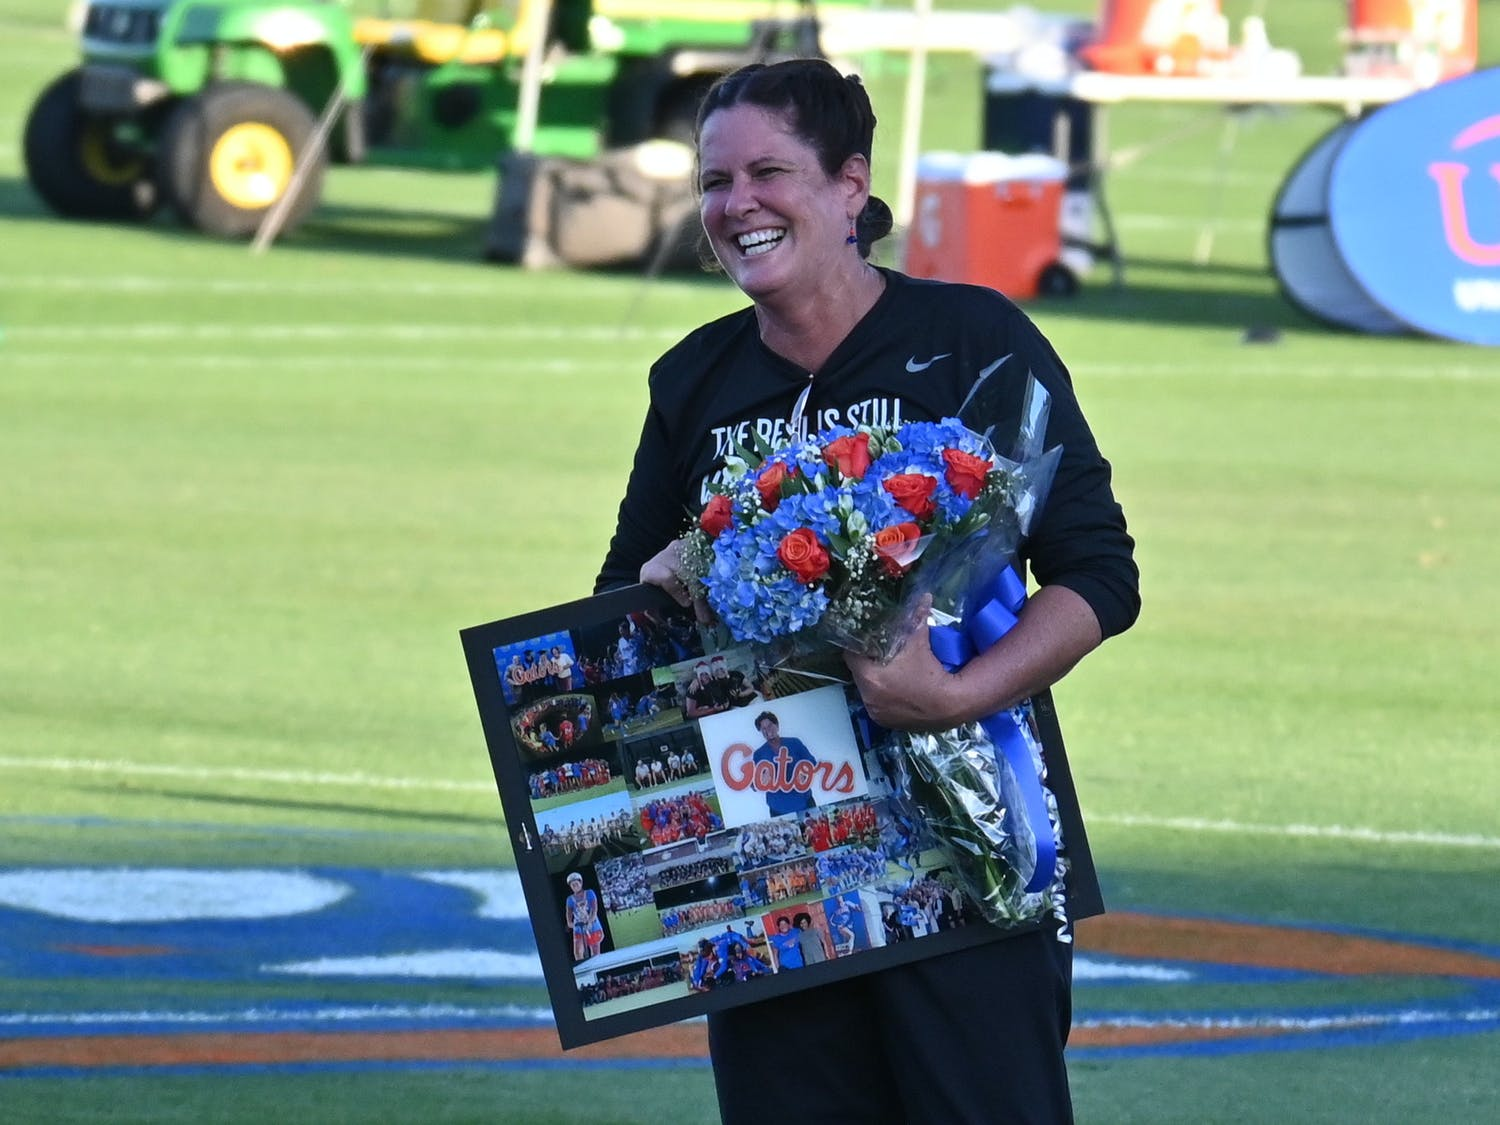 Coach Becky Burleigh ended her career at Florida with a 2-0 win over Miami. Photo from UF-Georgia Southern game March 11.